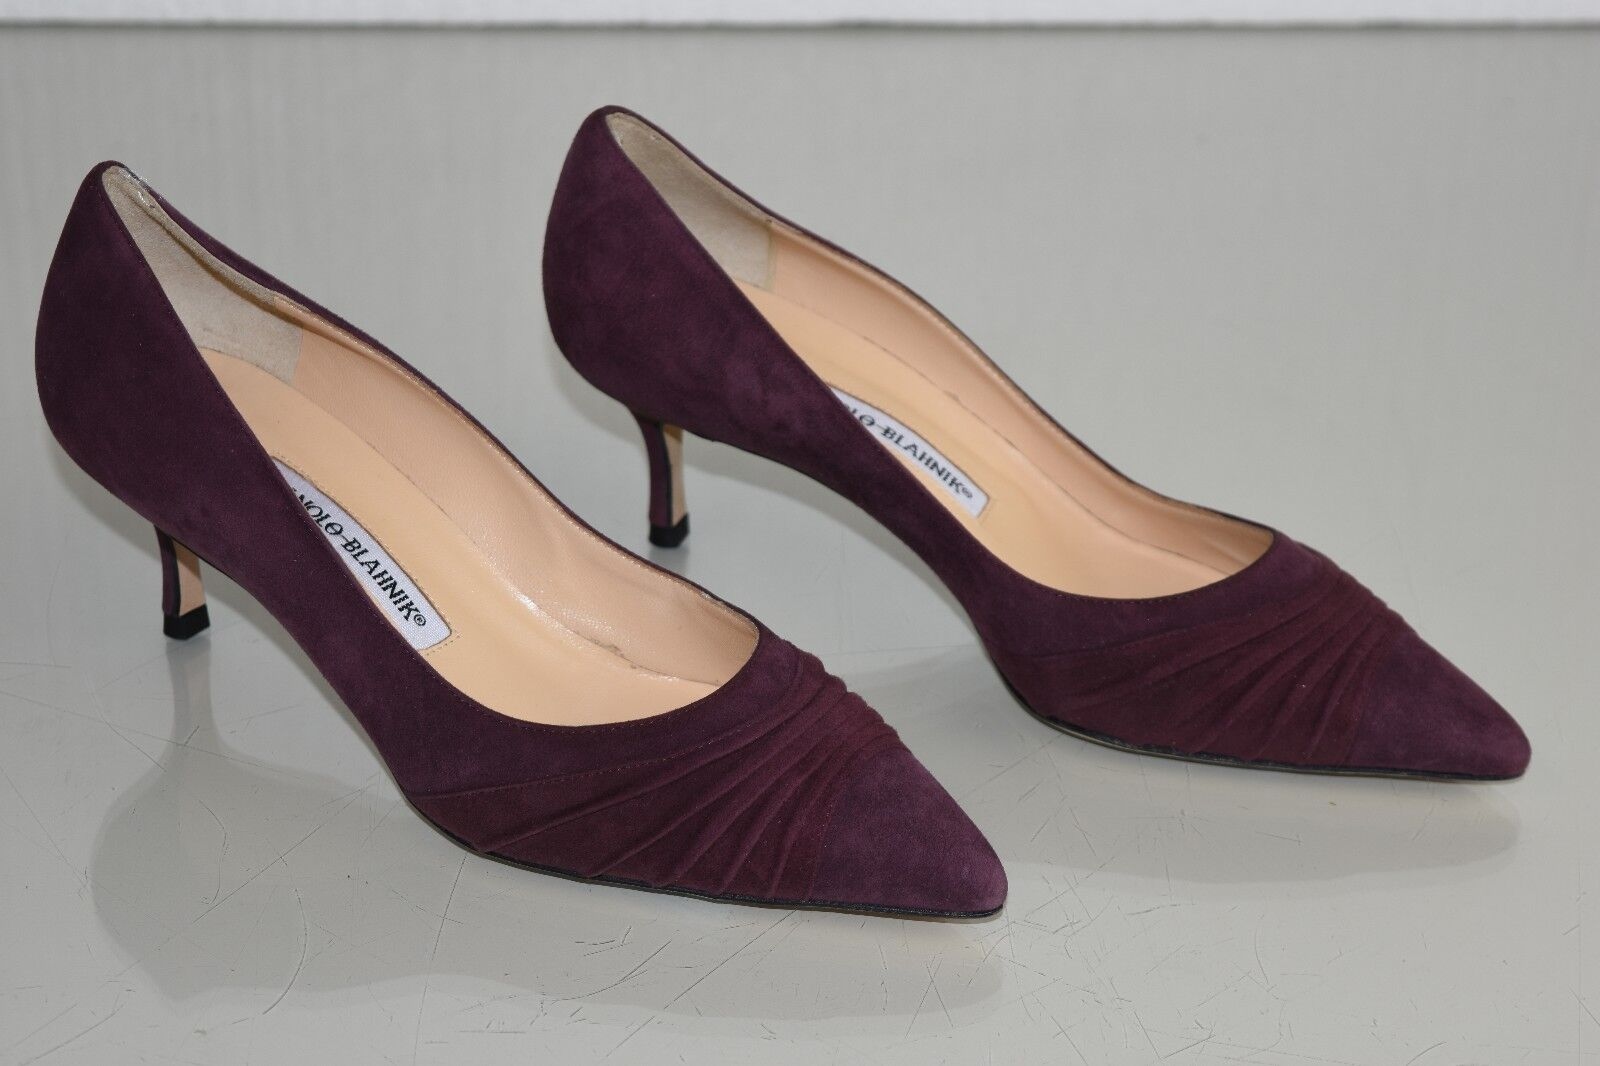 775 NEW MANOLO BLAHNIK goldA RUCHED PUMPS BB SUEDE Burgundy  BORDO SHOES 37